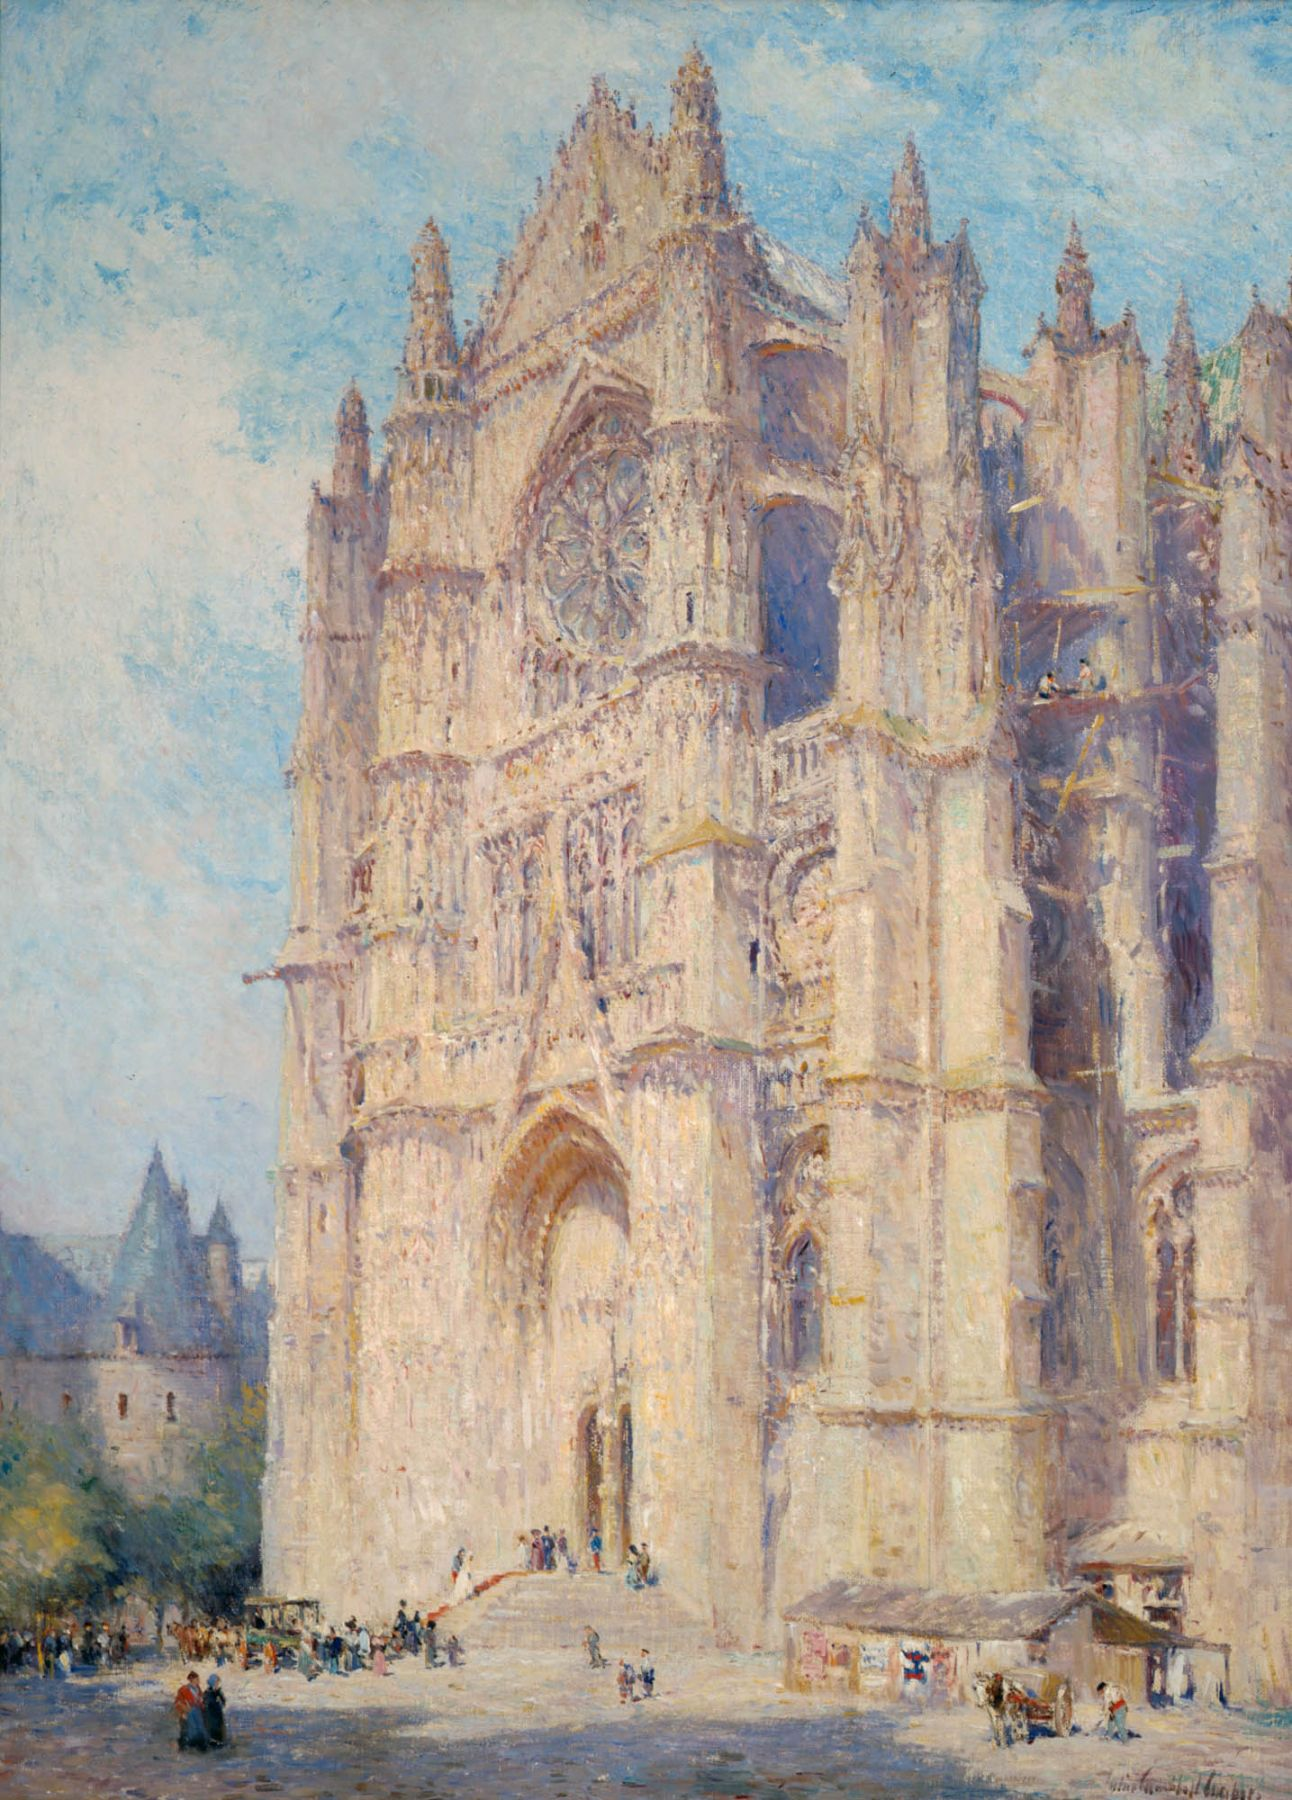 Colin Campbell Cooper, Beauvais Cathedral, 1926